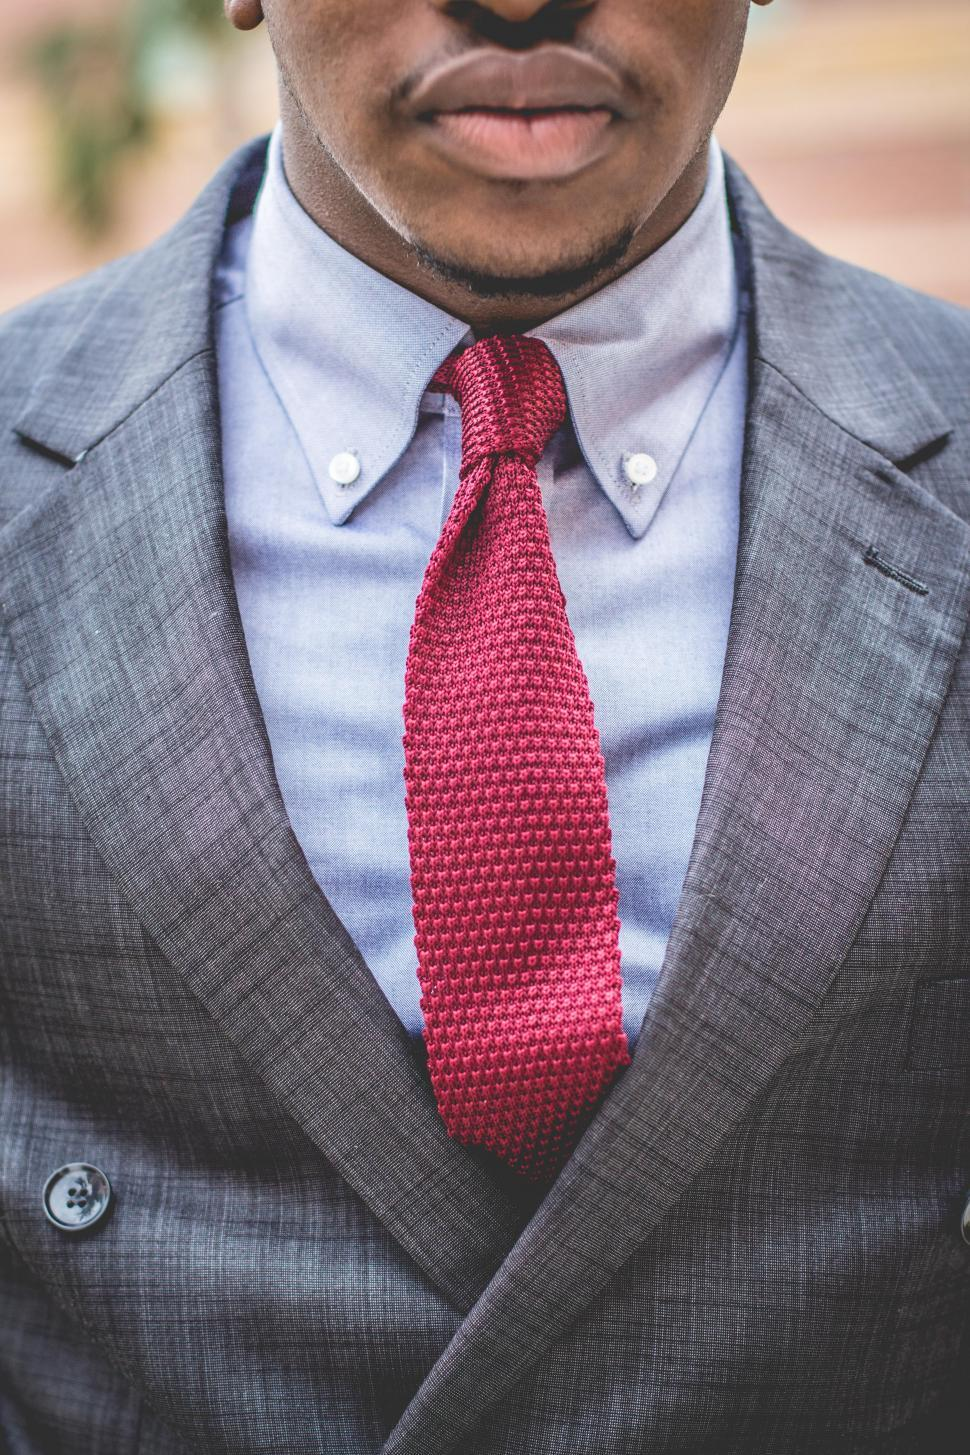 Download Free Stock Photo of Young man in formal clothing